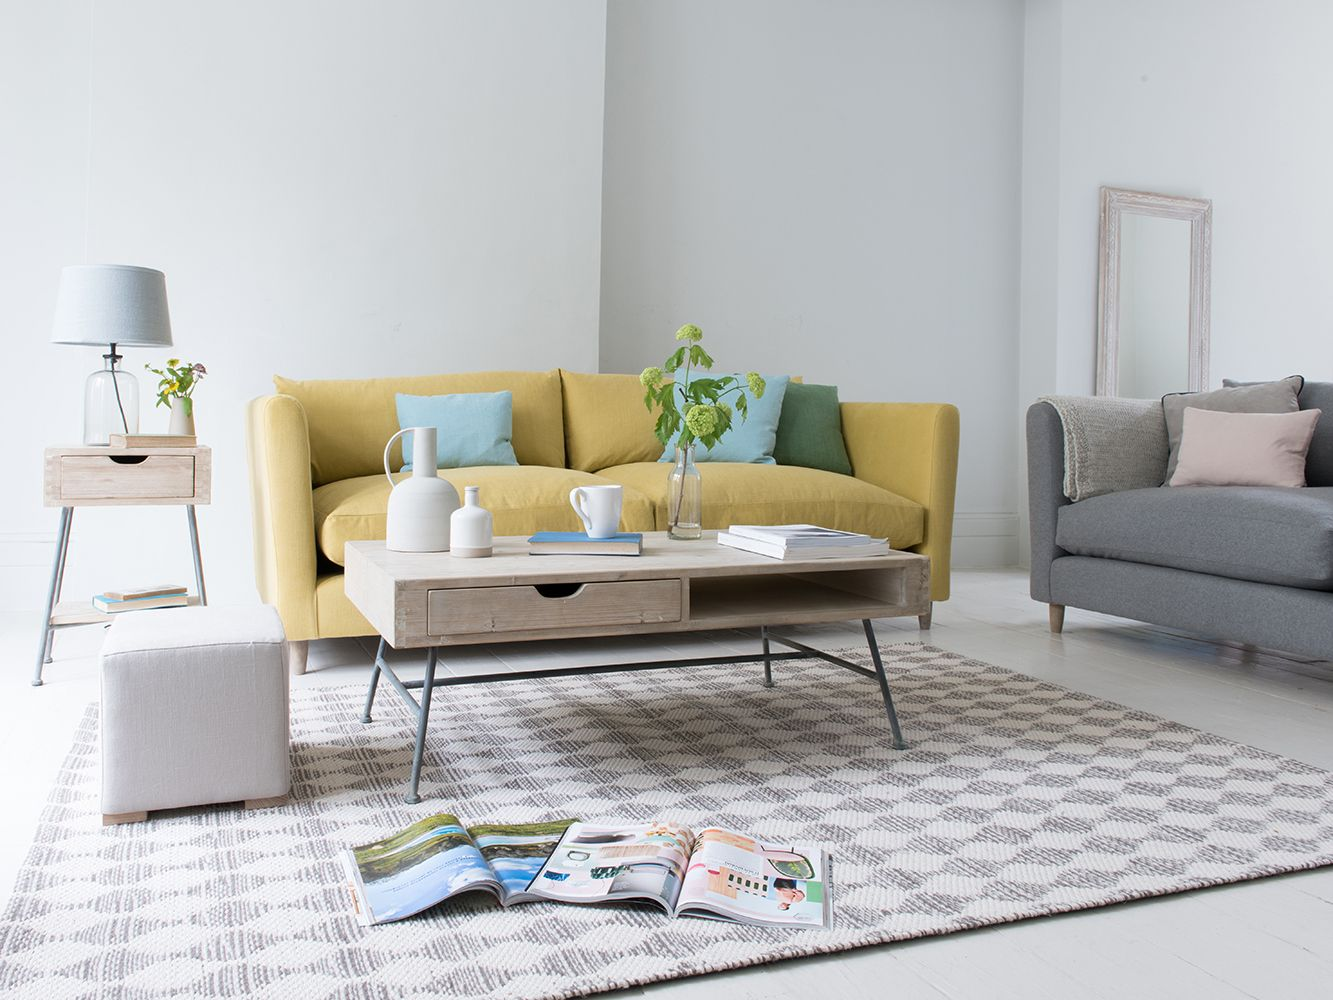 Bring A Bright Pop Of Yellow Into The Sitting Room. The Perfect Way To Perk